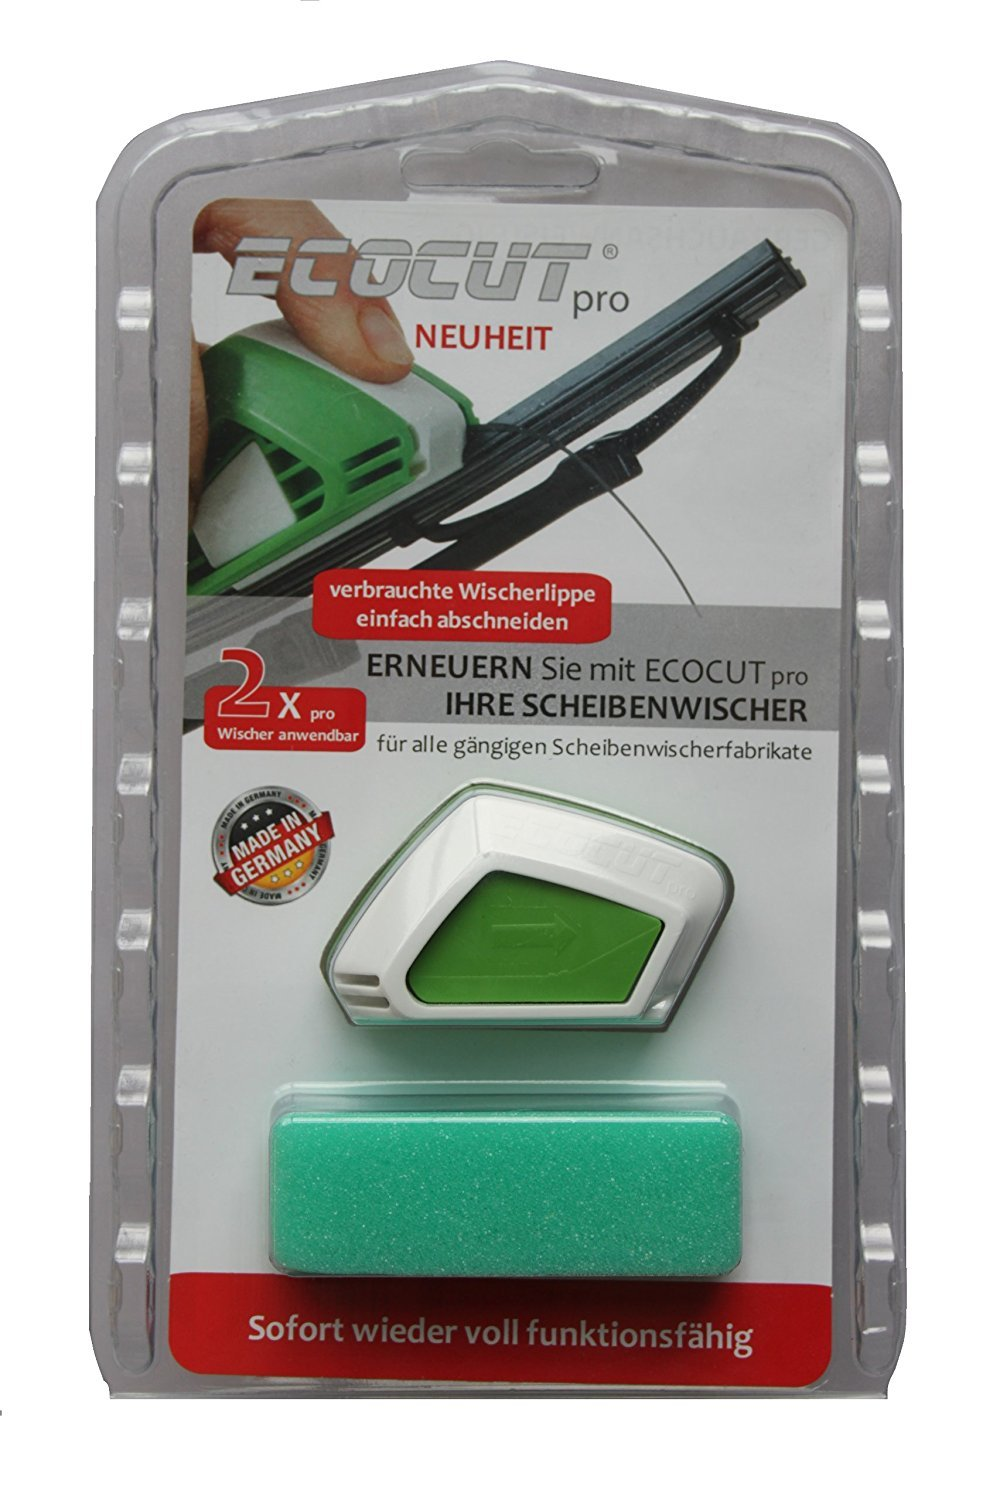 Windshield Wiper Regroover I Auto Windshield Wiper Cutter I Windscreen Wiper Blades Cutter Restorer New, Cars tools, Glass - Wiper Blades Repair Quickly and Easily I DIY Smart Repair by LuxuryTeech (Image #6)